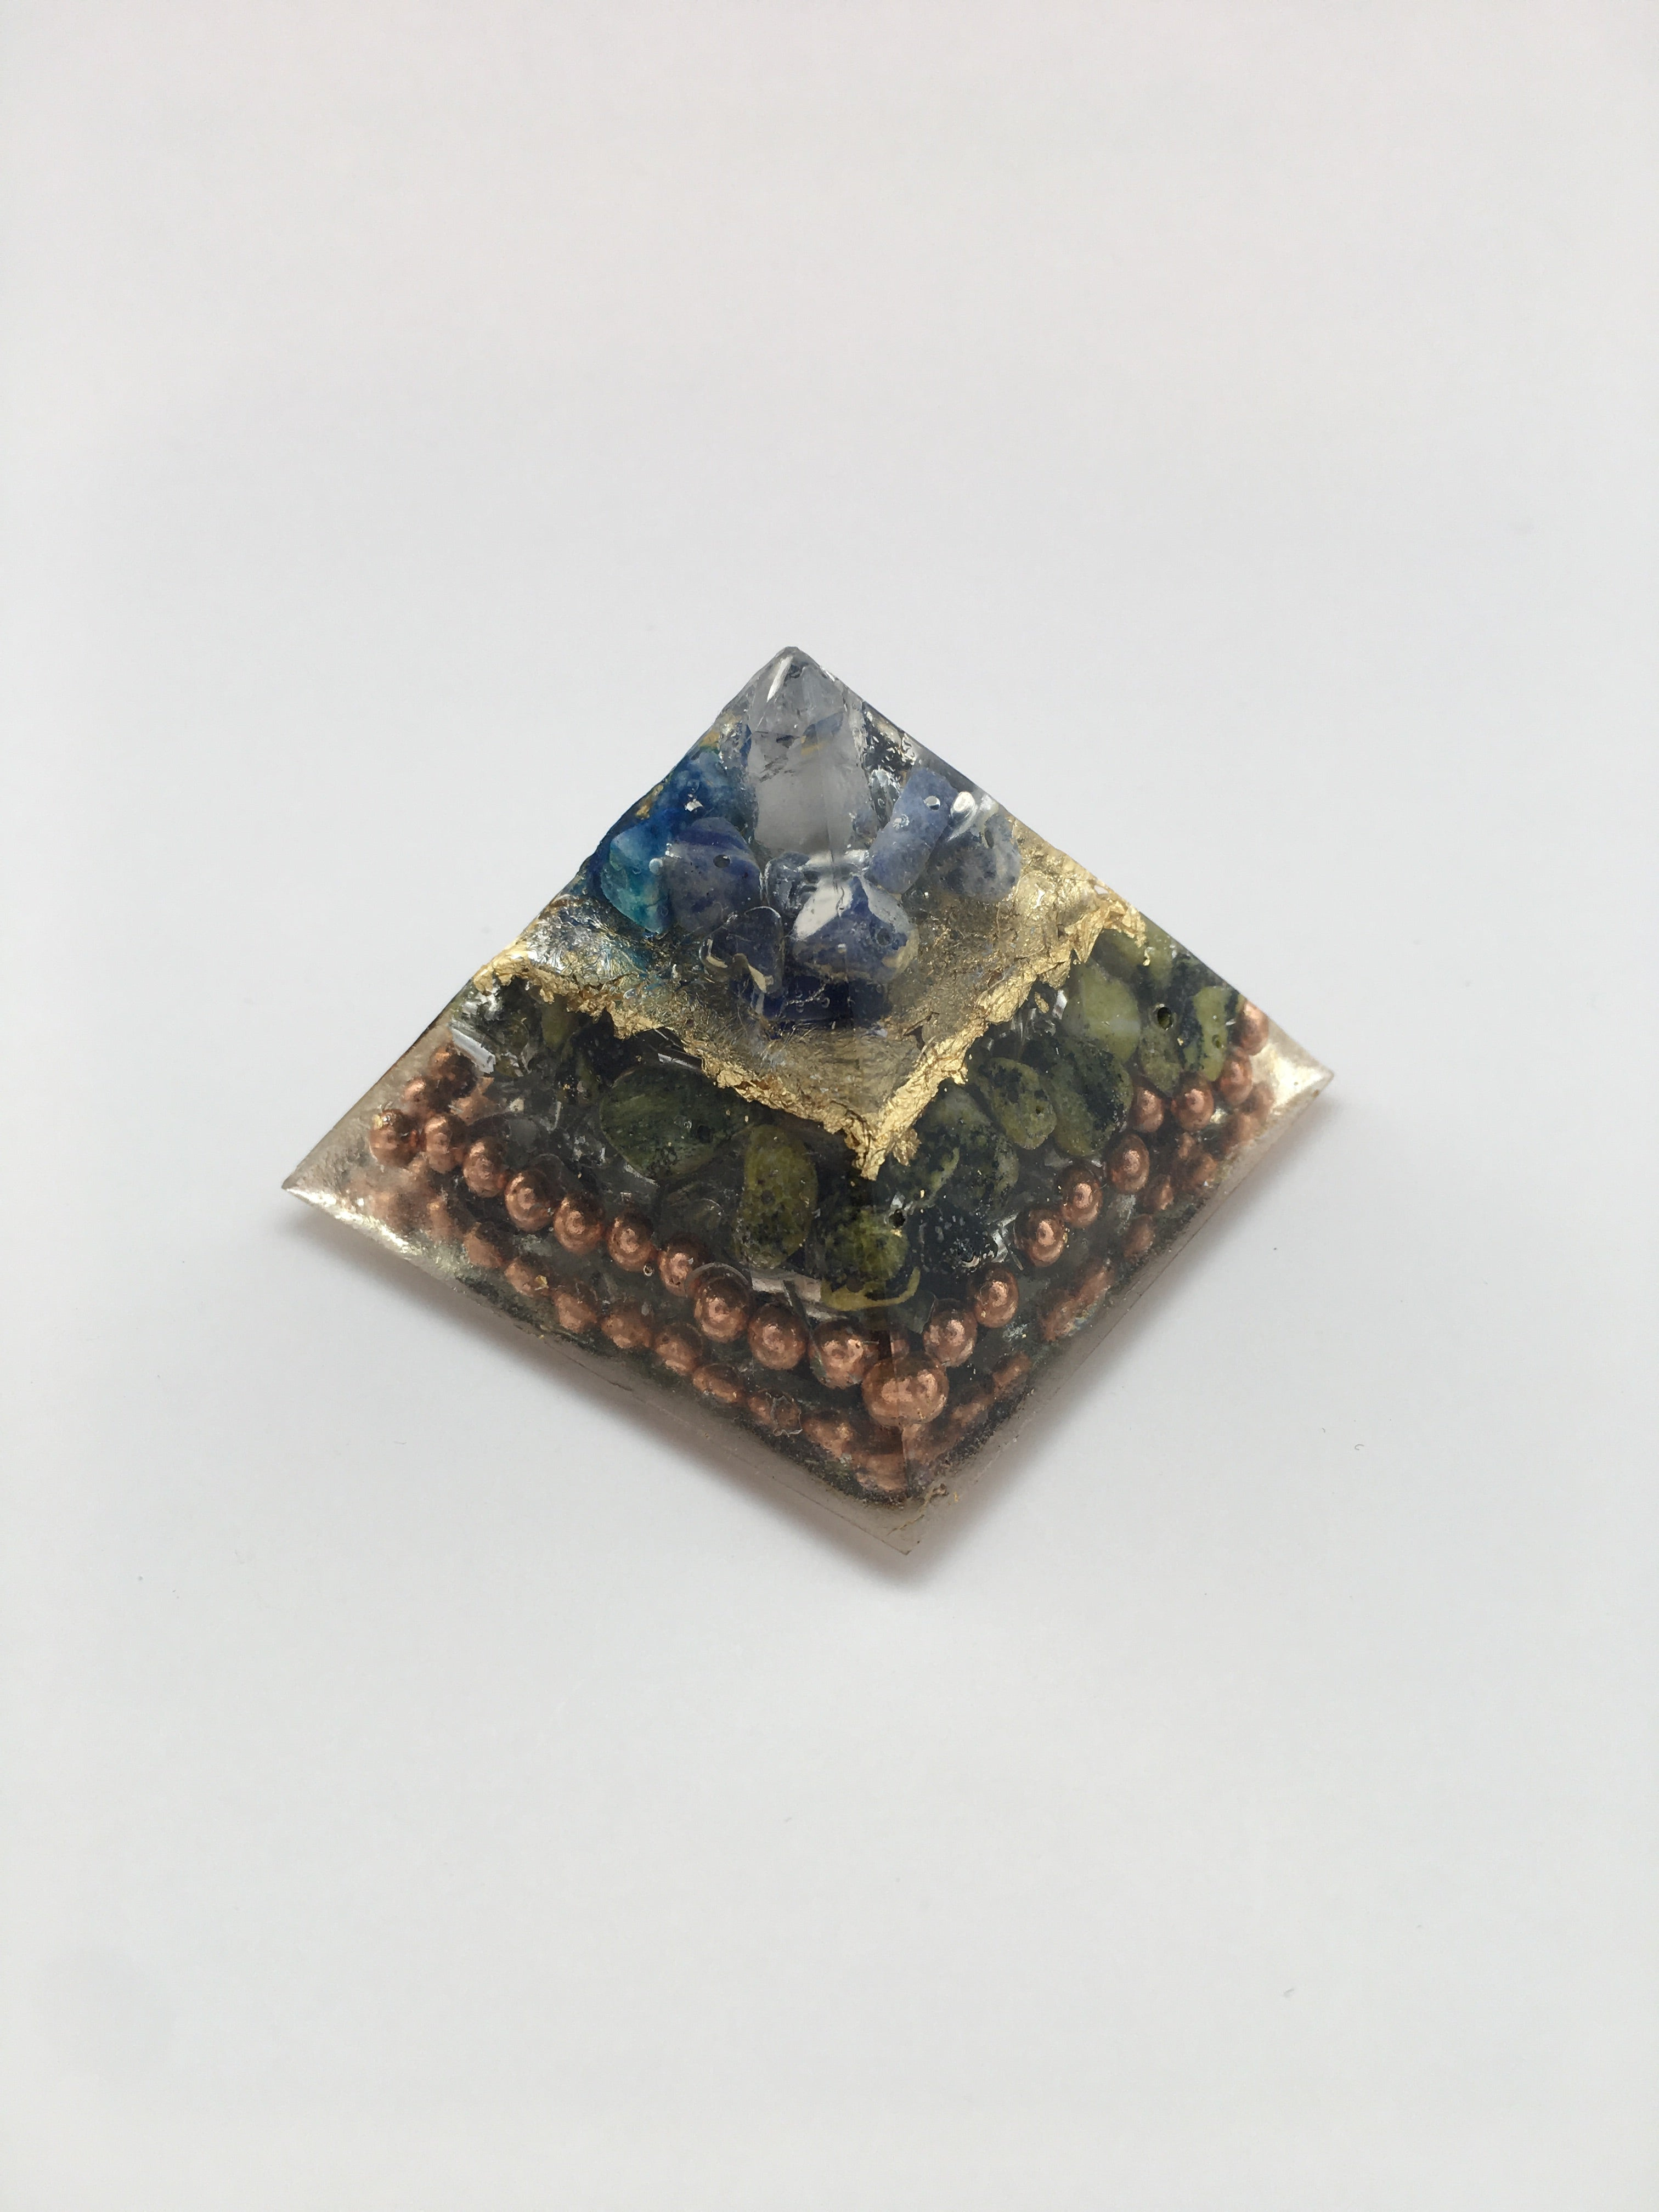 Chi Enhancing Pyramid — Small Sodalite Serpentine